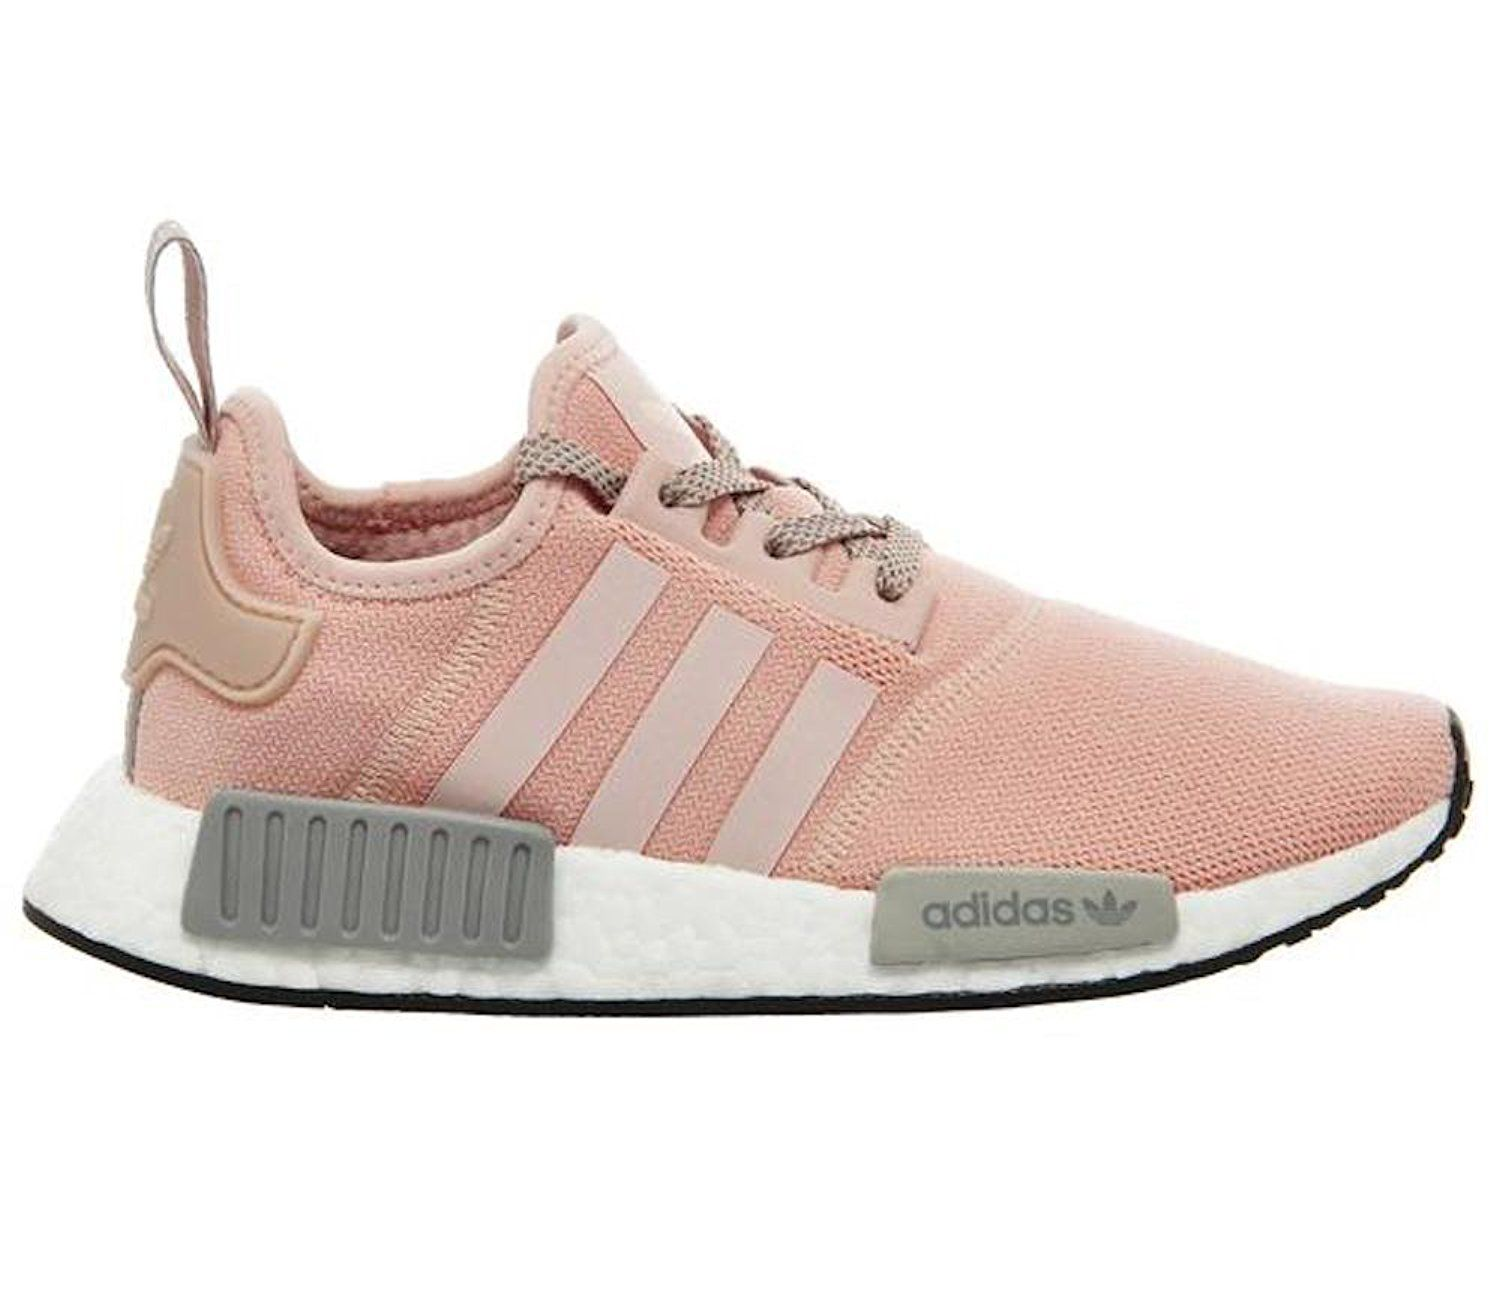 women's adidas nmd runner casual shoes vapour pink